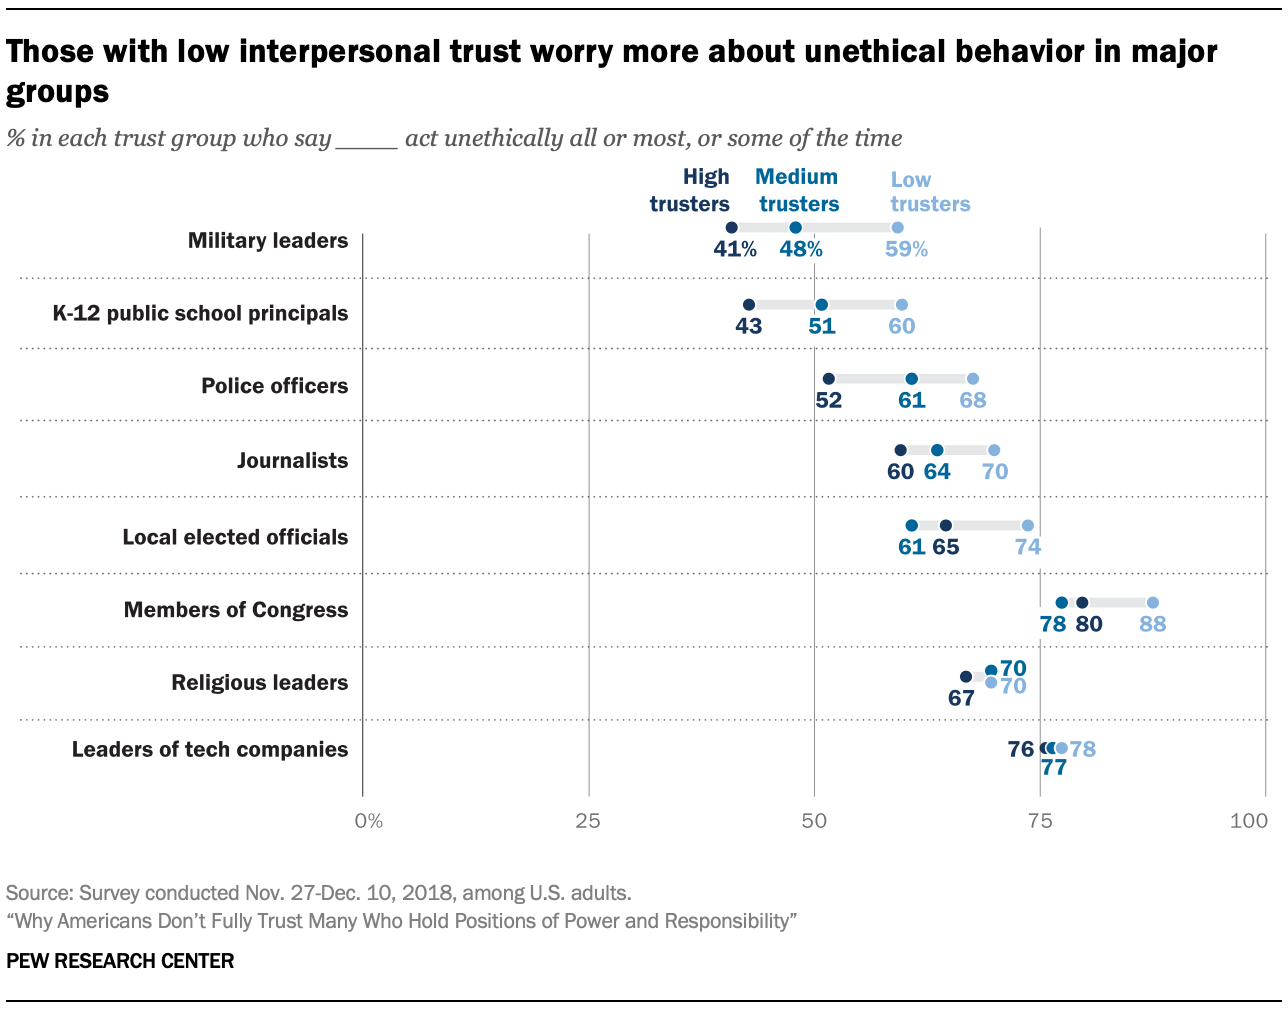 Those with low interpersonal trust worry more about unethical behavior in major groups